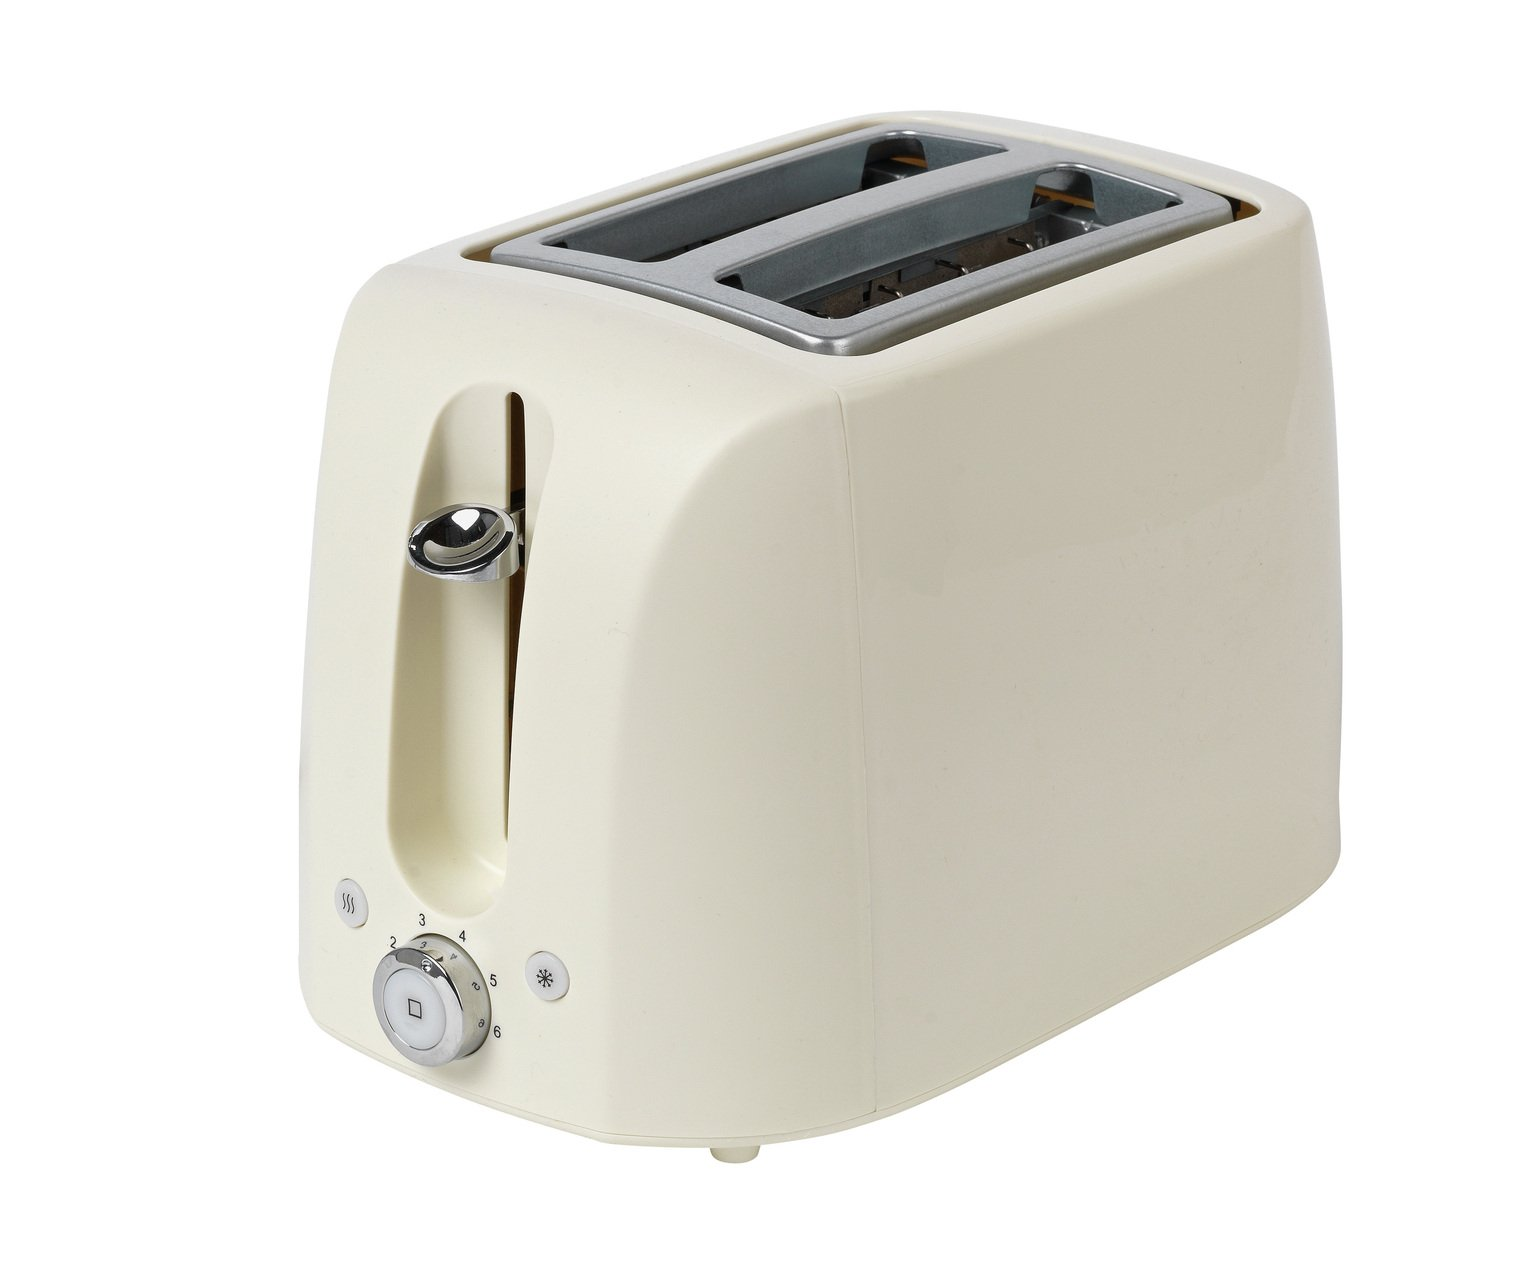 Cookworks 2 Slice Toaster - Cream